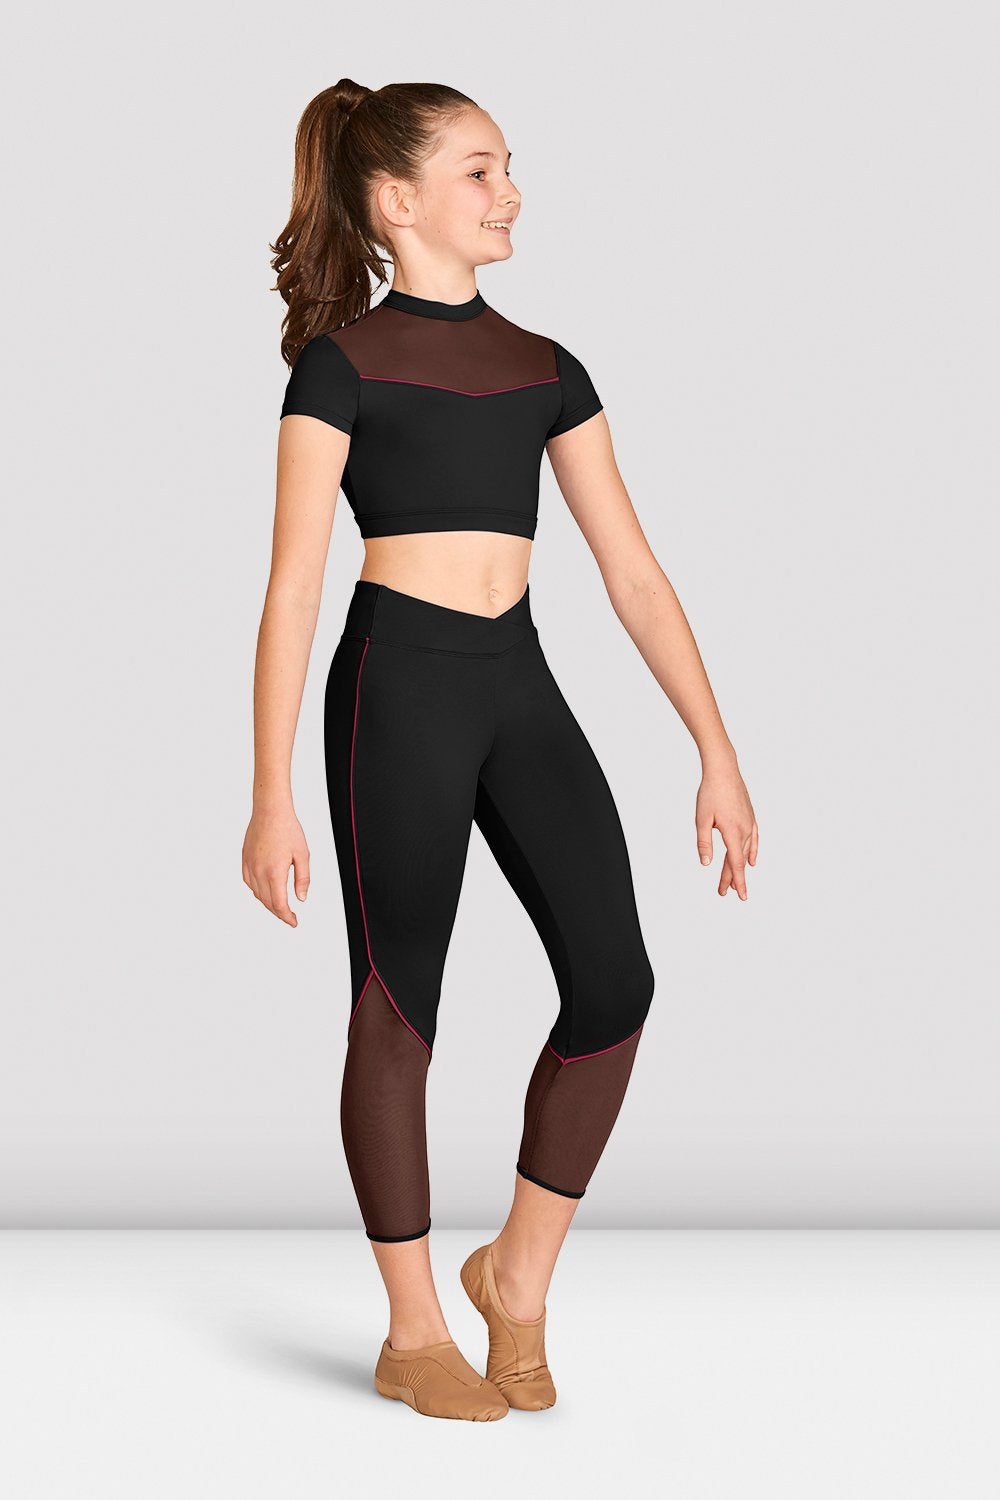 Girls Contrast Piping Seven Eighth Legging - BLOCH US